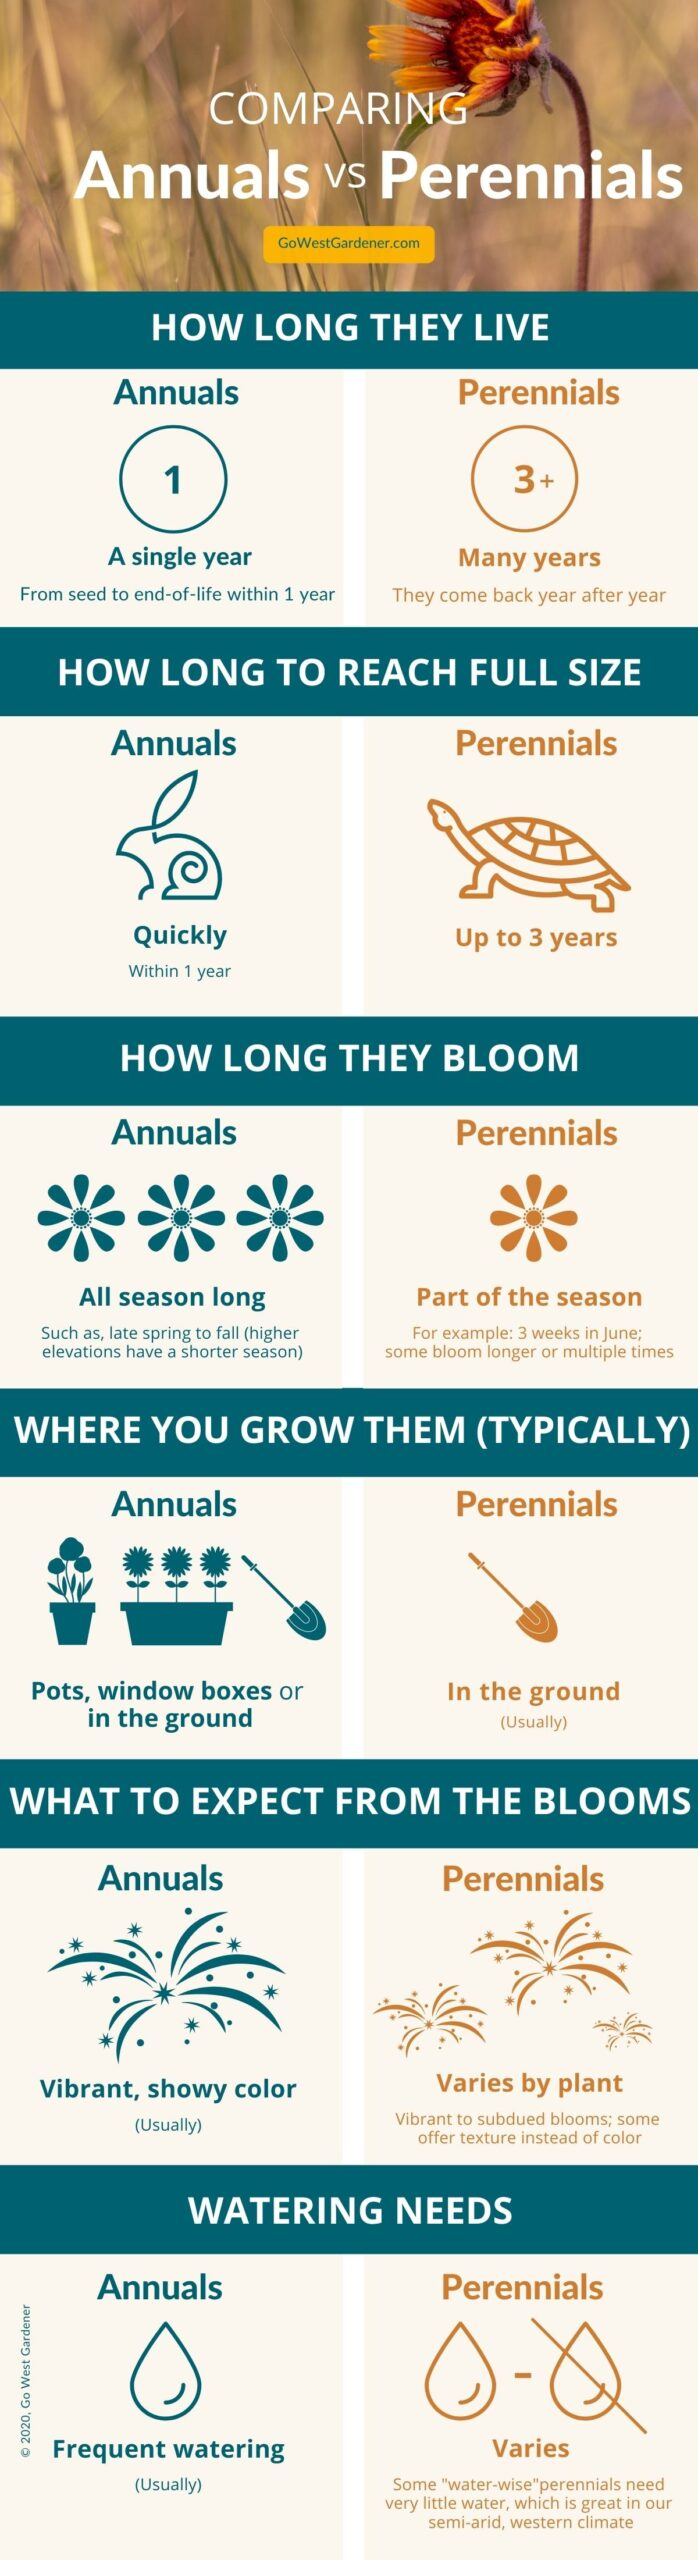 Infographic showing differences between annuals vs perennials